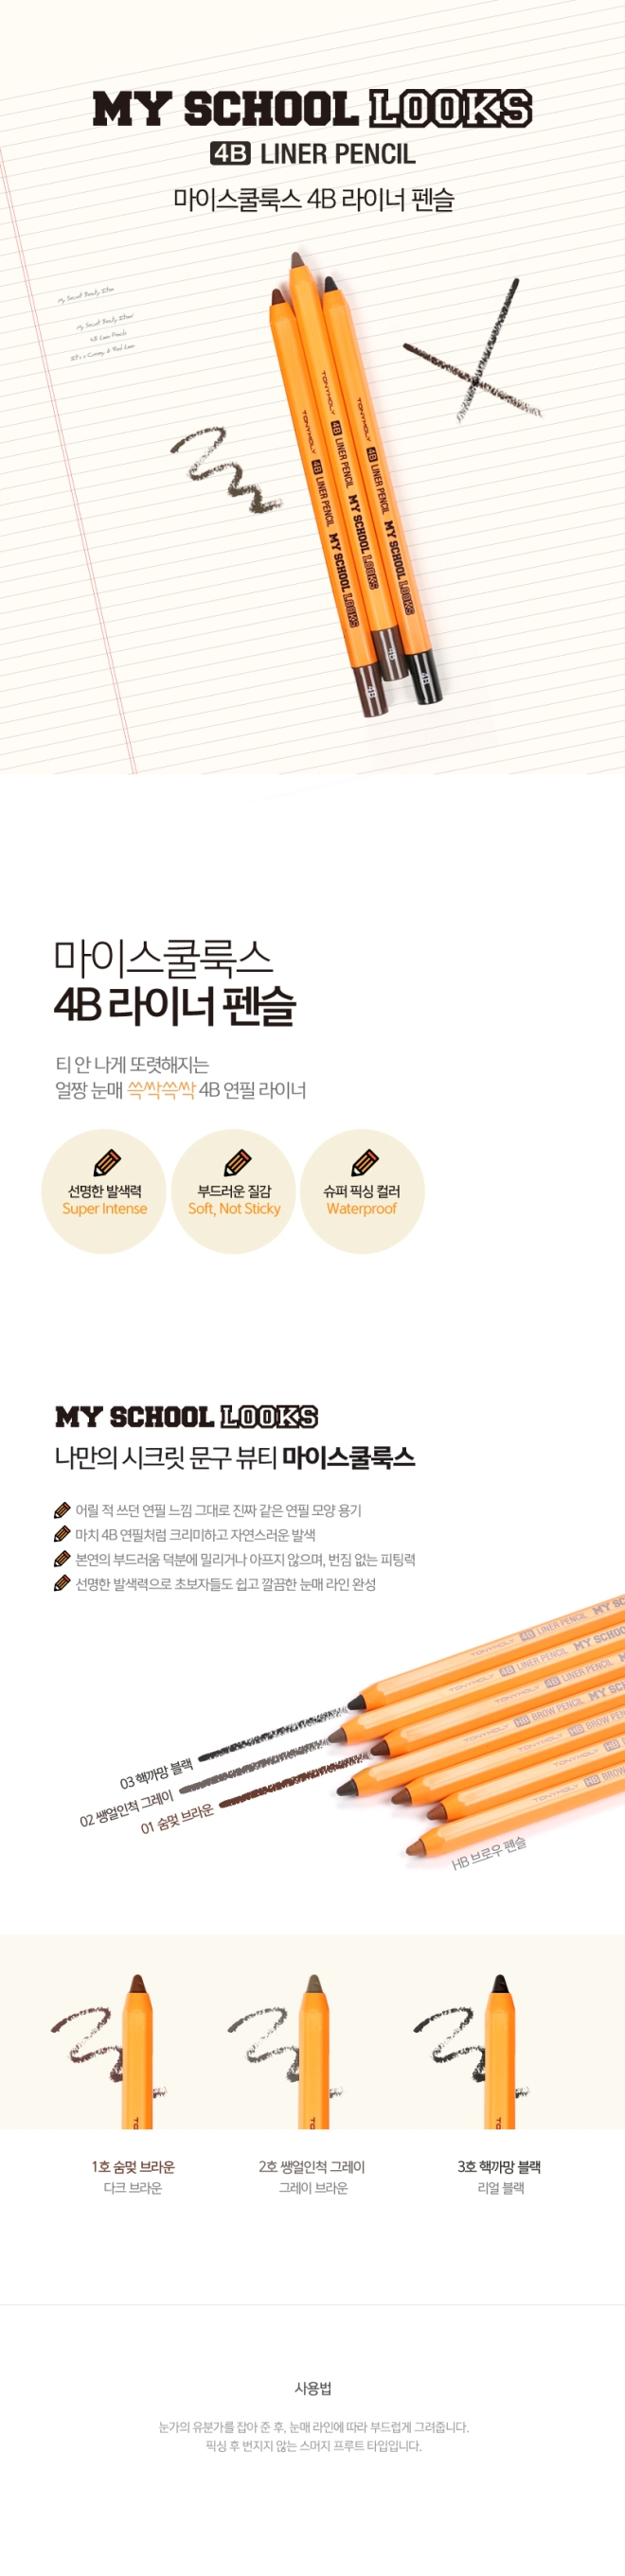 Credit: Tonymoly Korea website